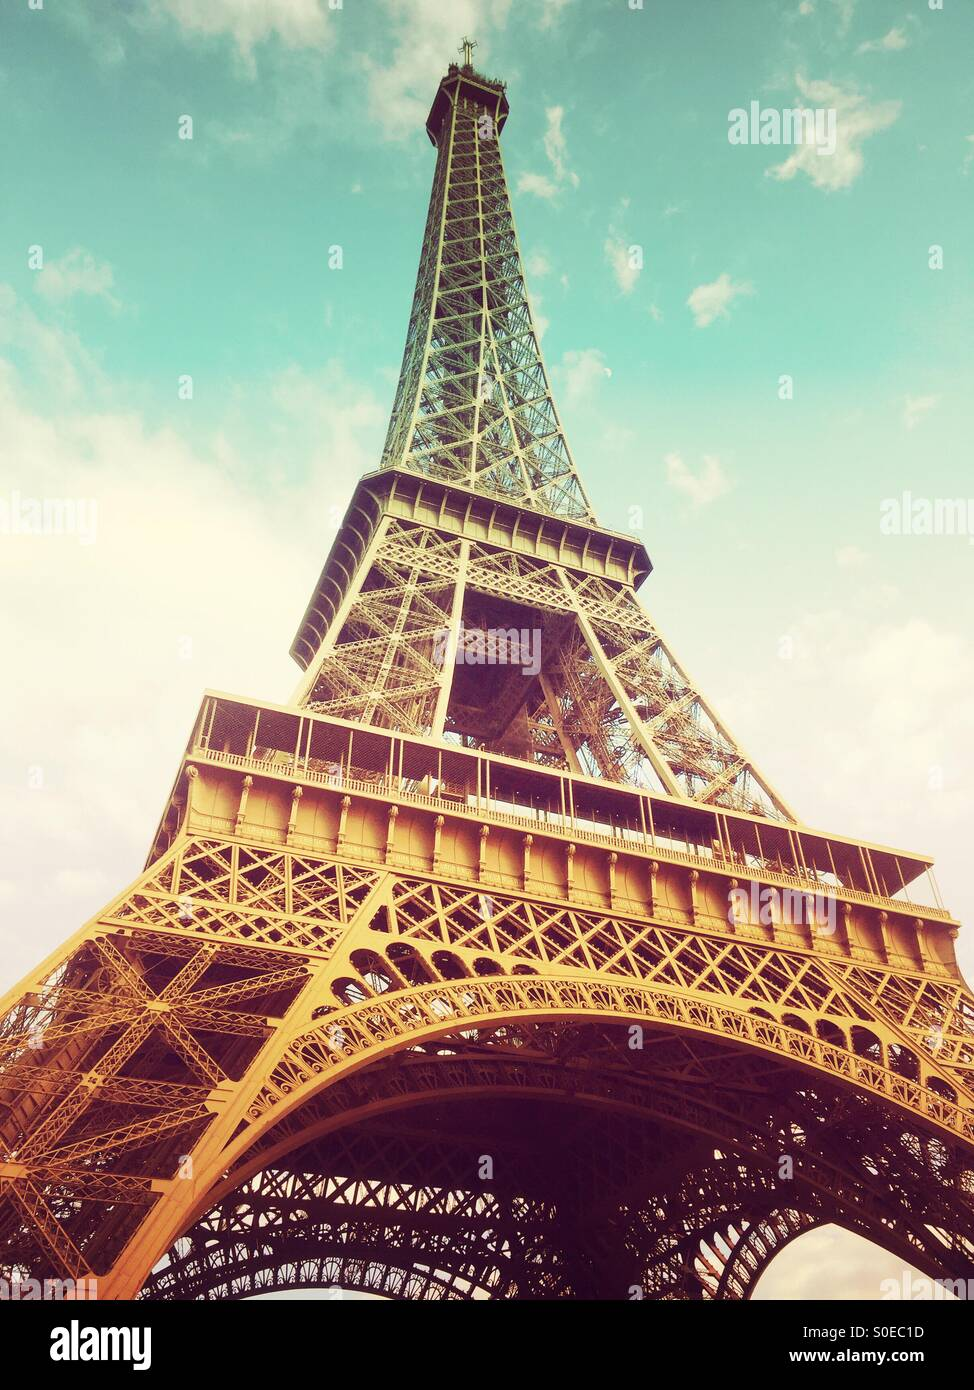 View of Eiffel Tower from below, along Champs de Mars in Paris, France. Warm, retro tones. Stock Photo